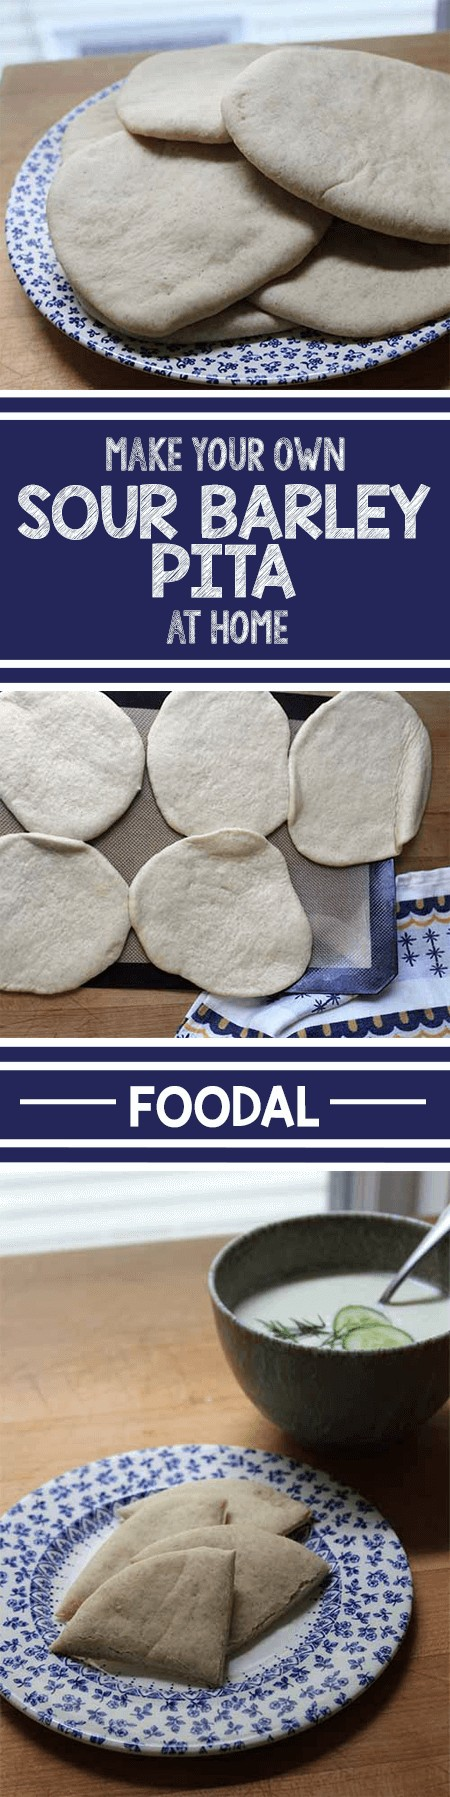 Make your own fresh pita in your own home oven. This simple recipe, made with a combination of wheat and barley flours, is soft and full of flavor. Eat it on its own, use it as a wrap for sandwiches, or even as the crust for homemade mini pizzas. It's a great recipe for novice bakers, and this post offers a helpful introduction to several baking techniques. https://foodal.com/recipes/breads/sour-barley-pita/